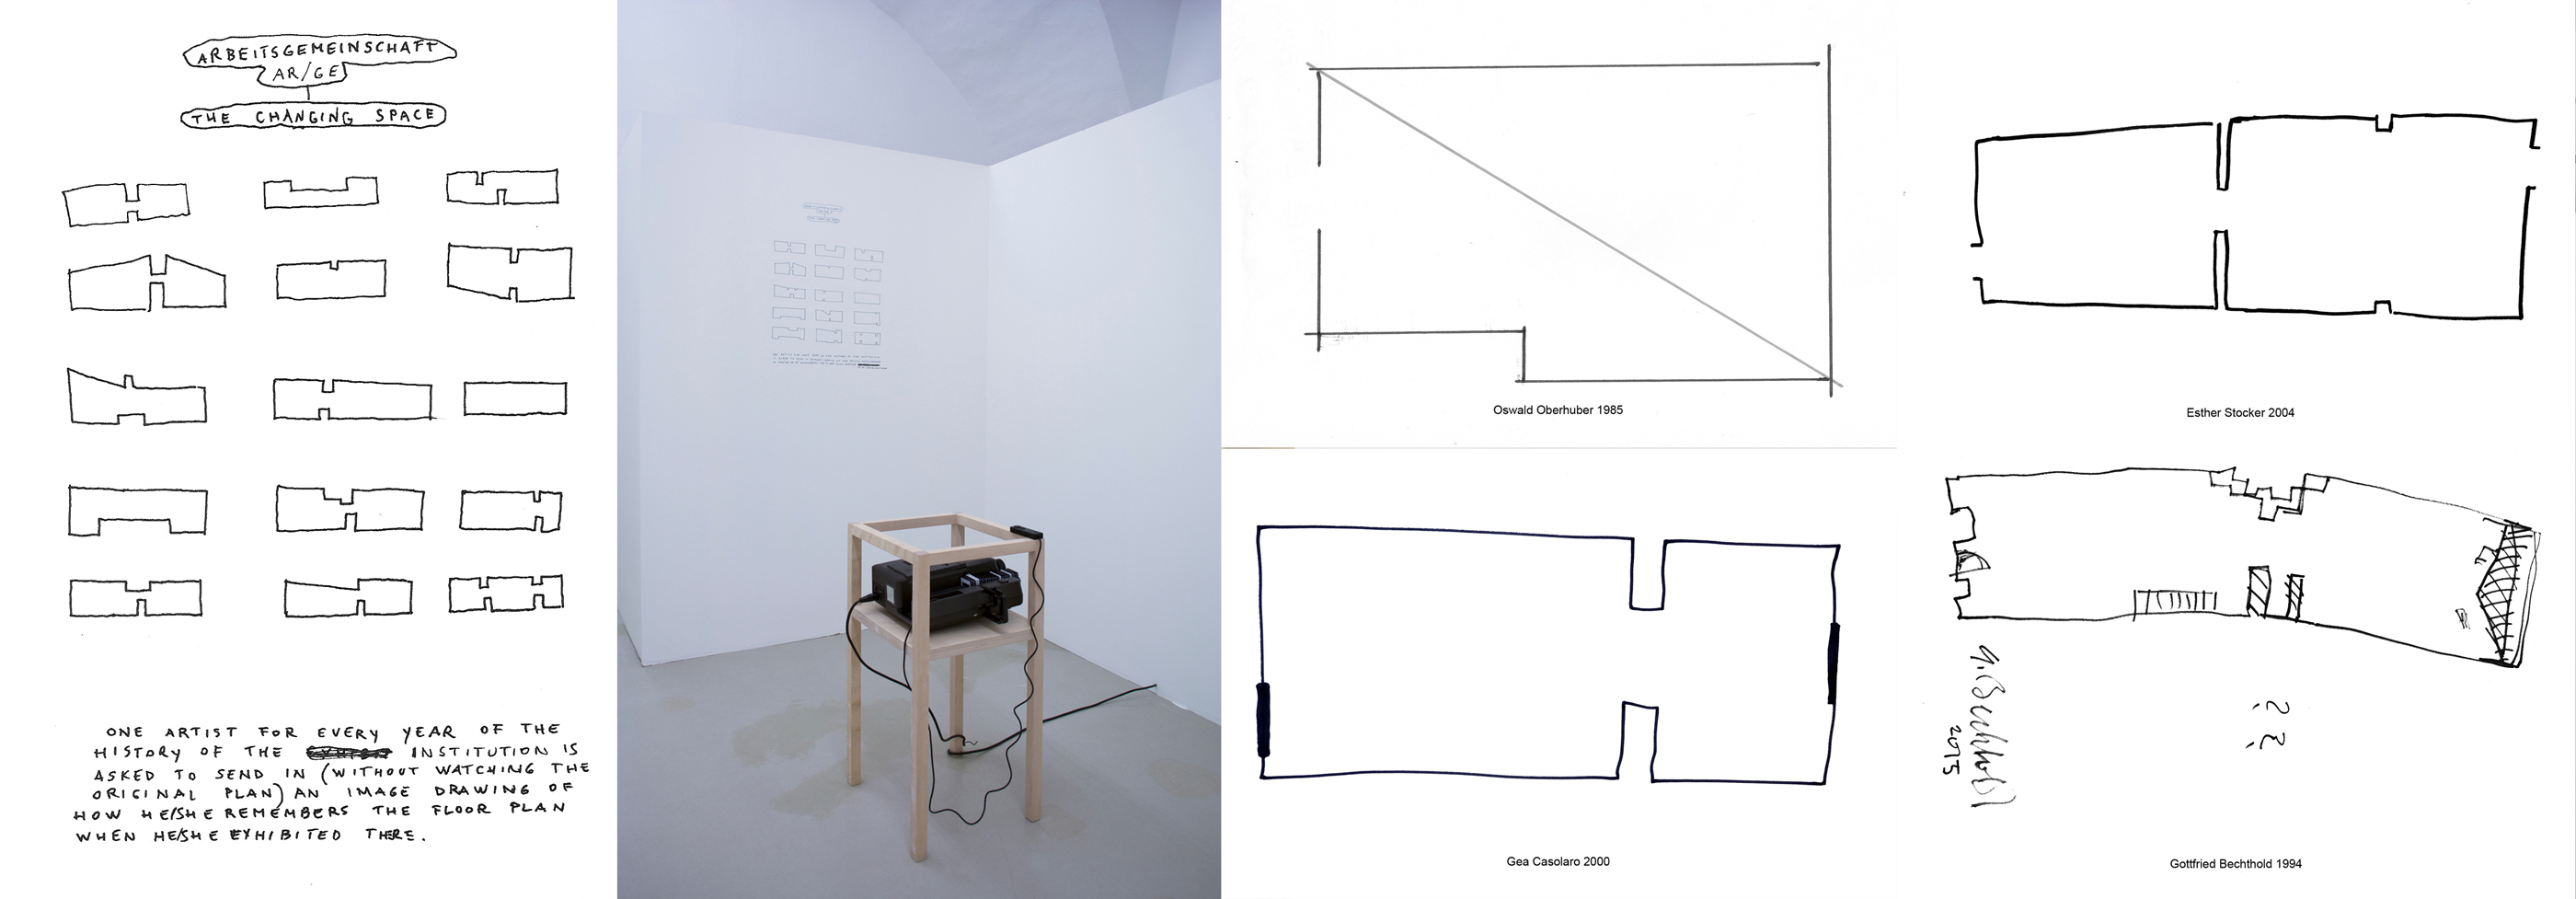 spatial-disposition-small-the-changing-space-aldo-giannotti.jpg